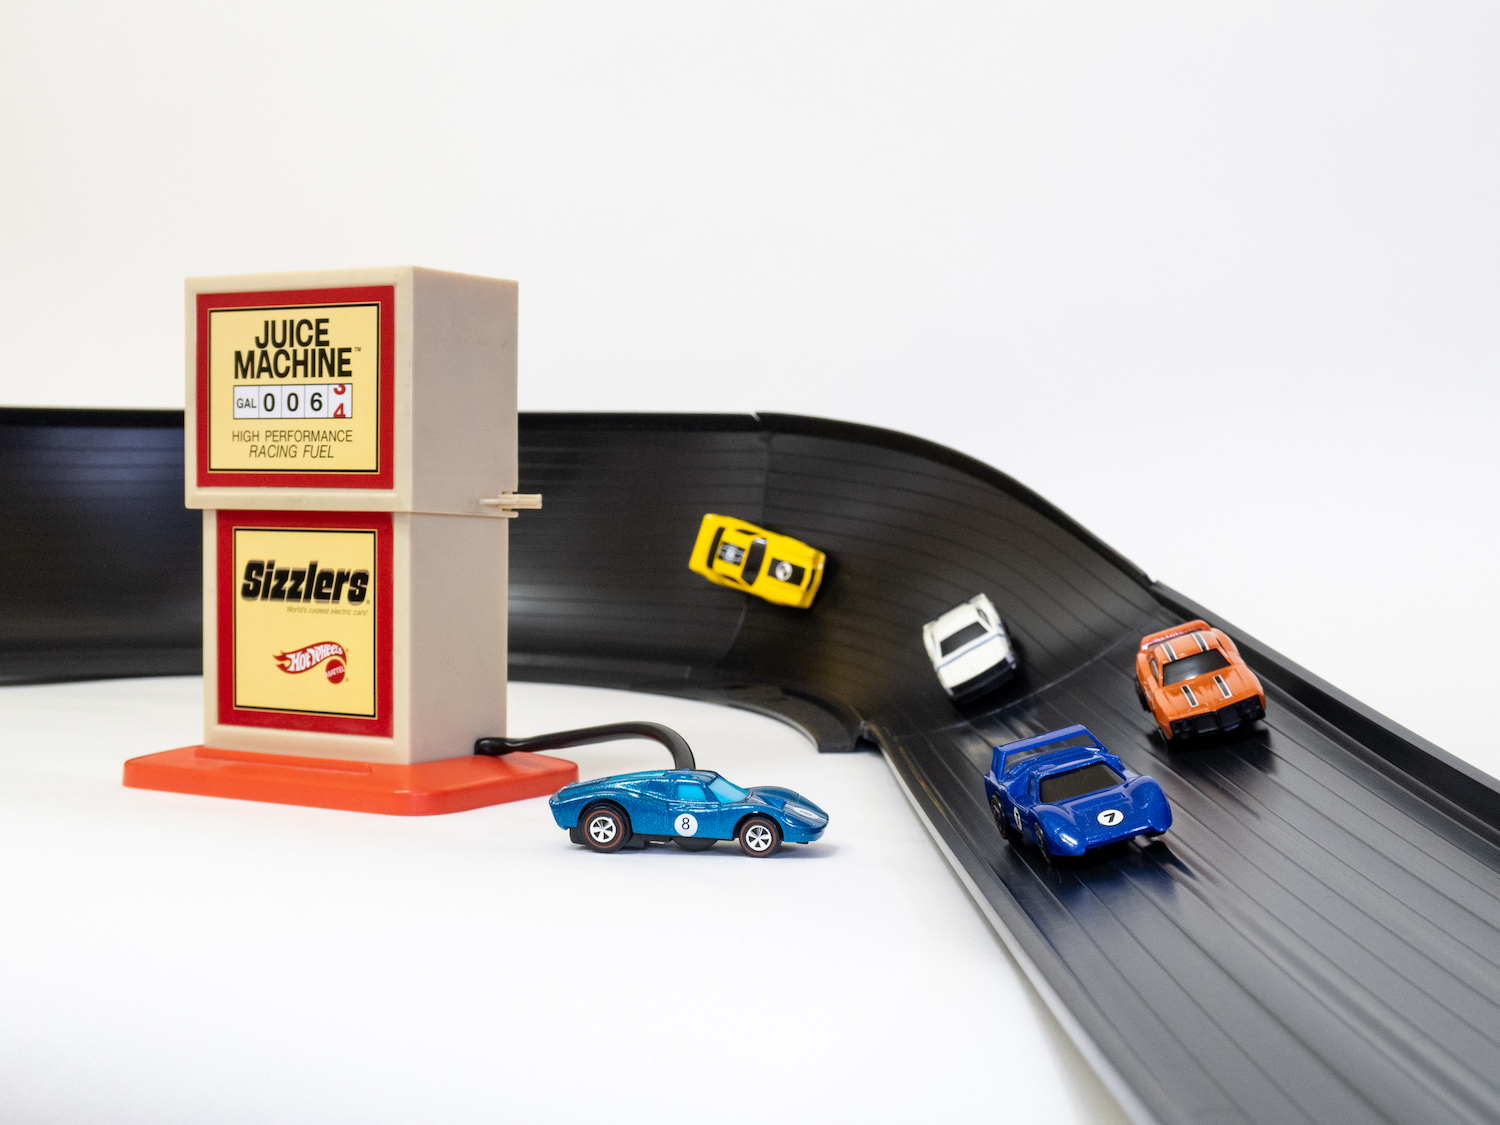 miniature motorized cars on track